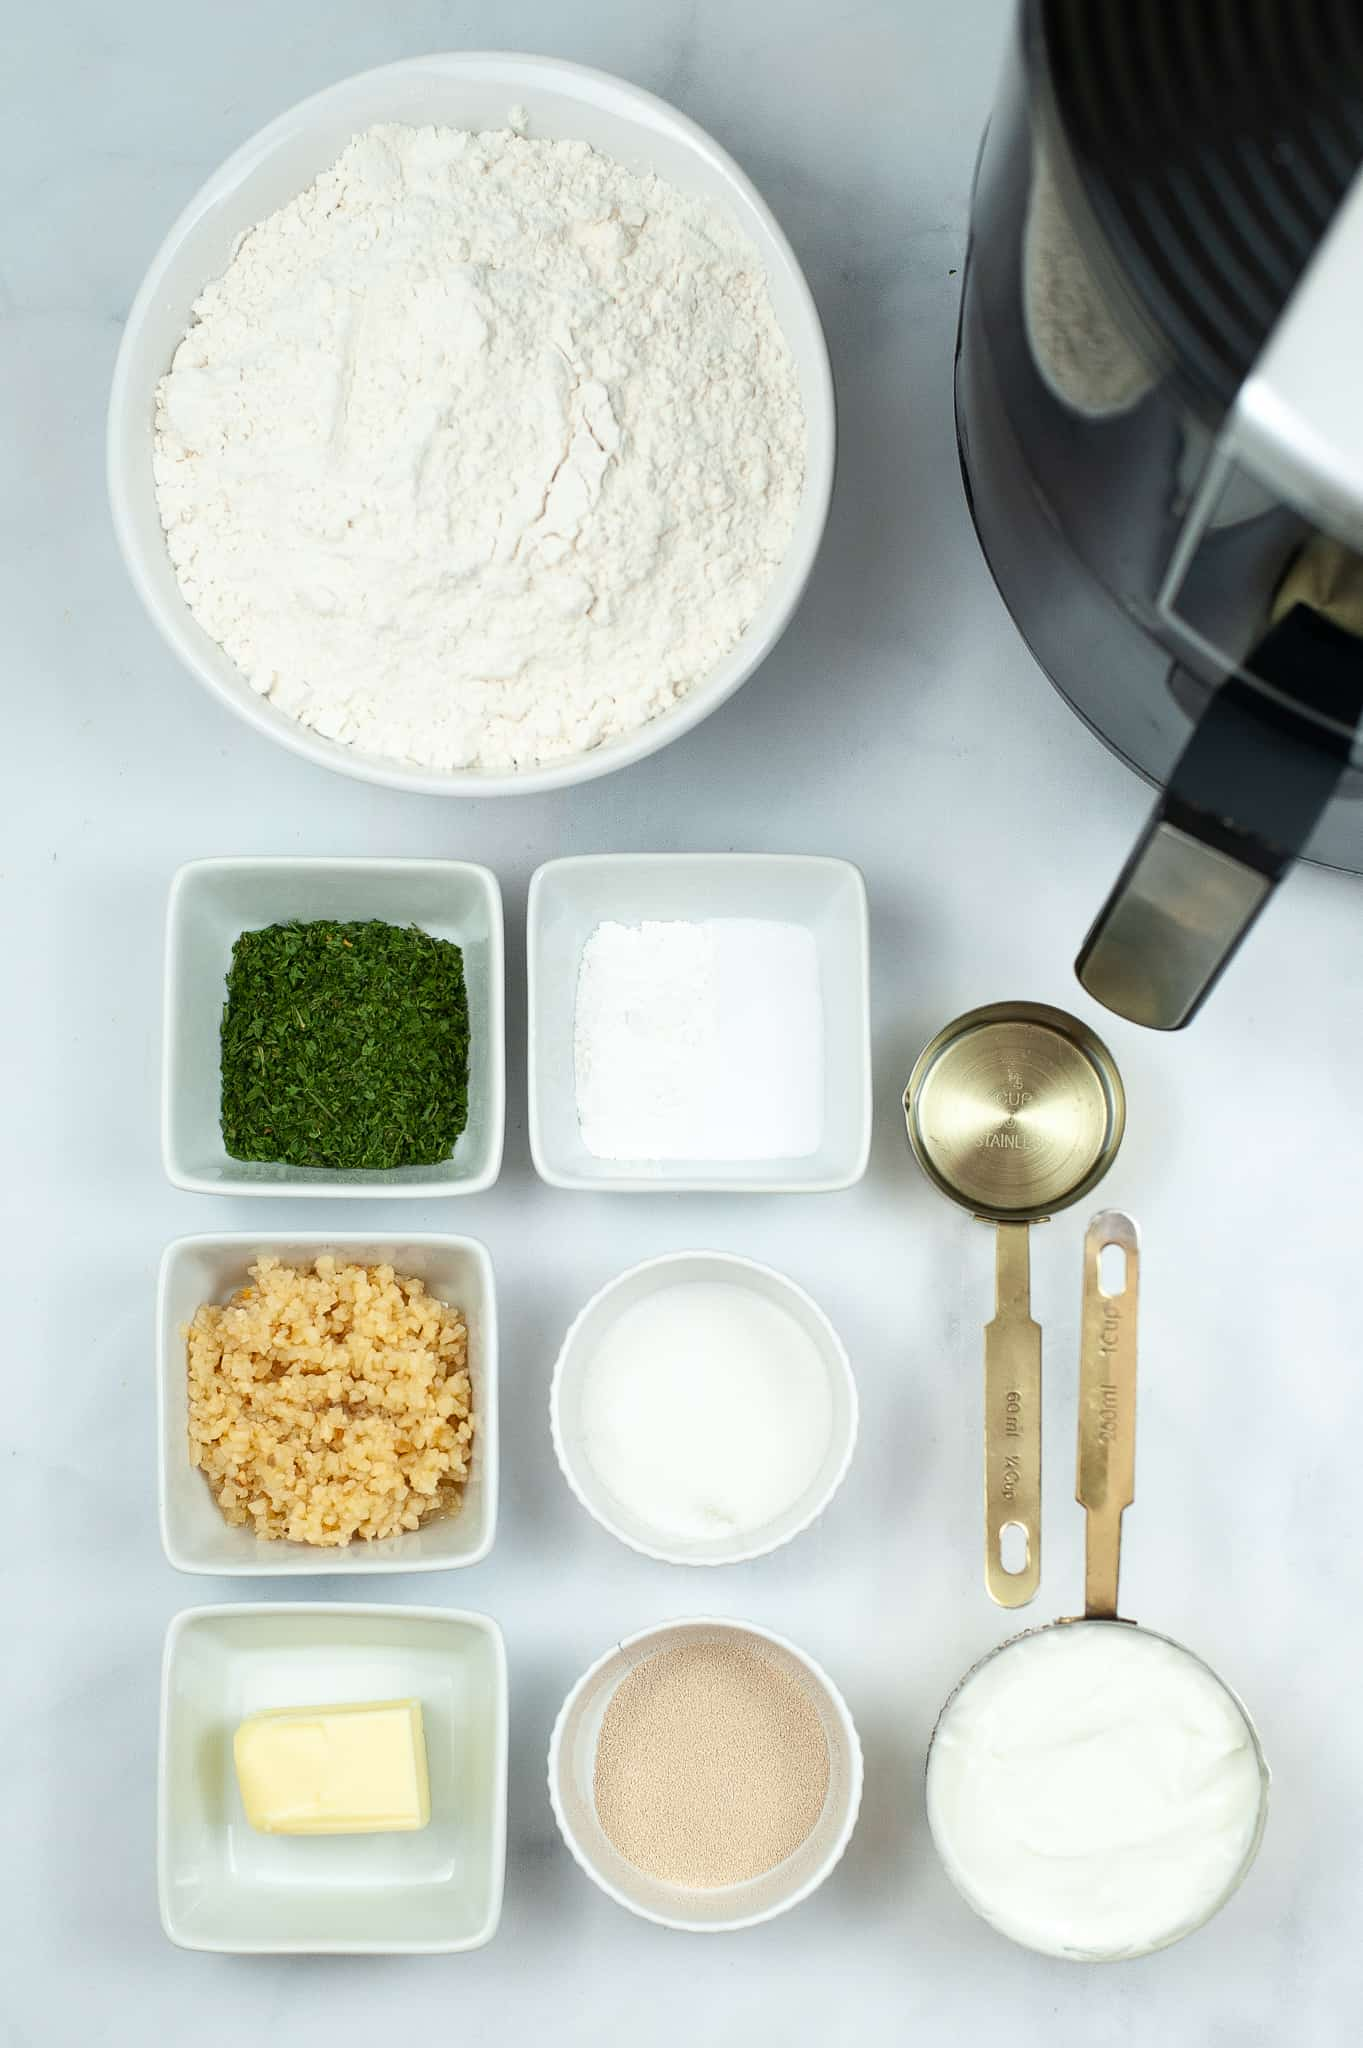 Bowl of flour with seasonings and garlic to make naan bread.